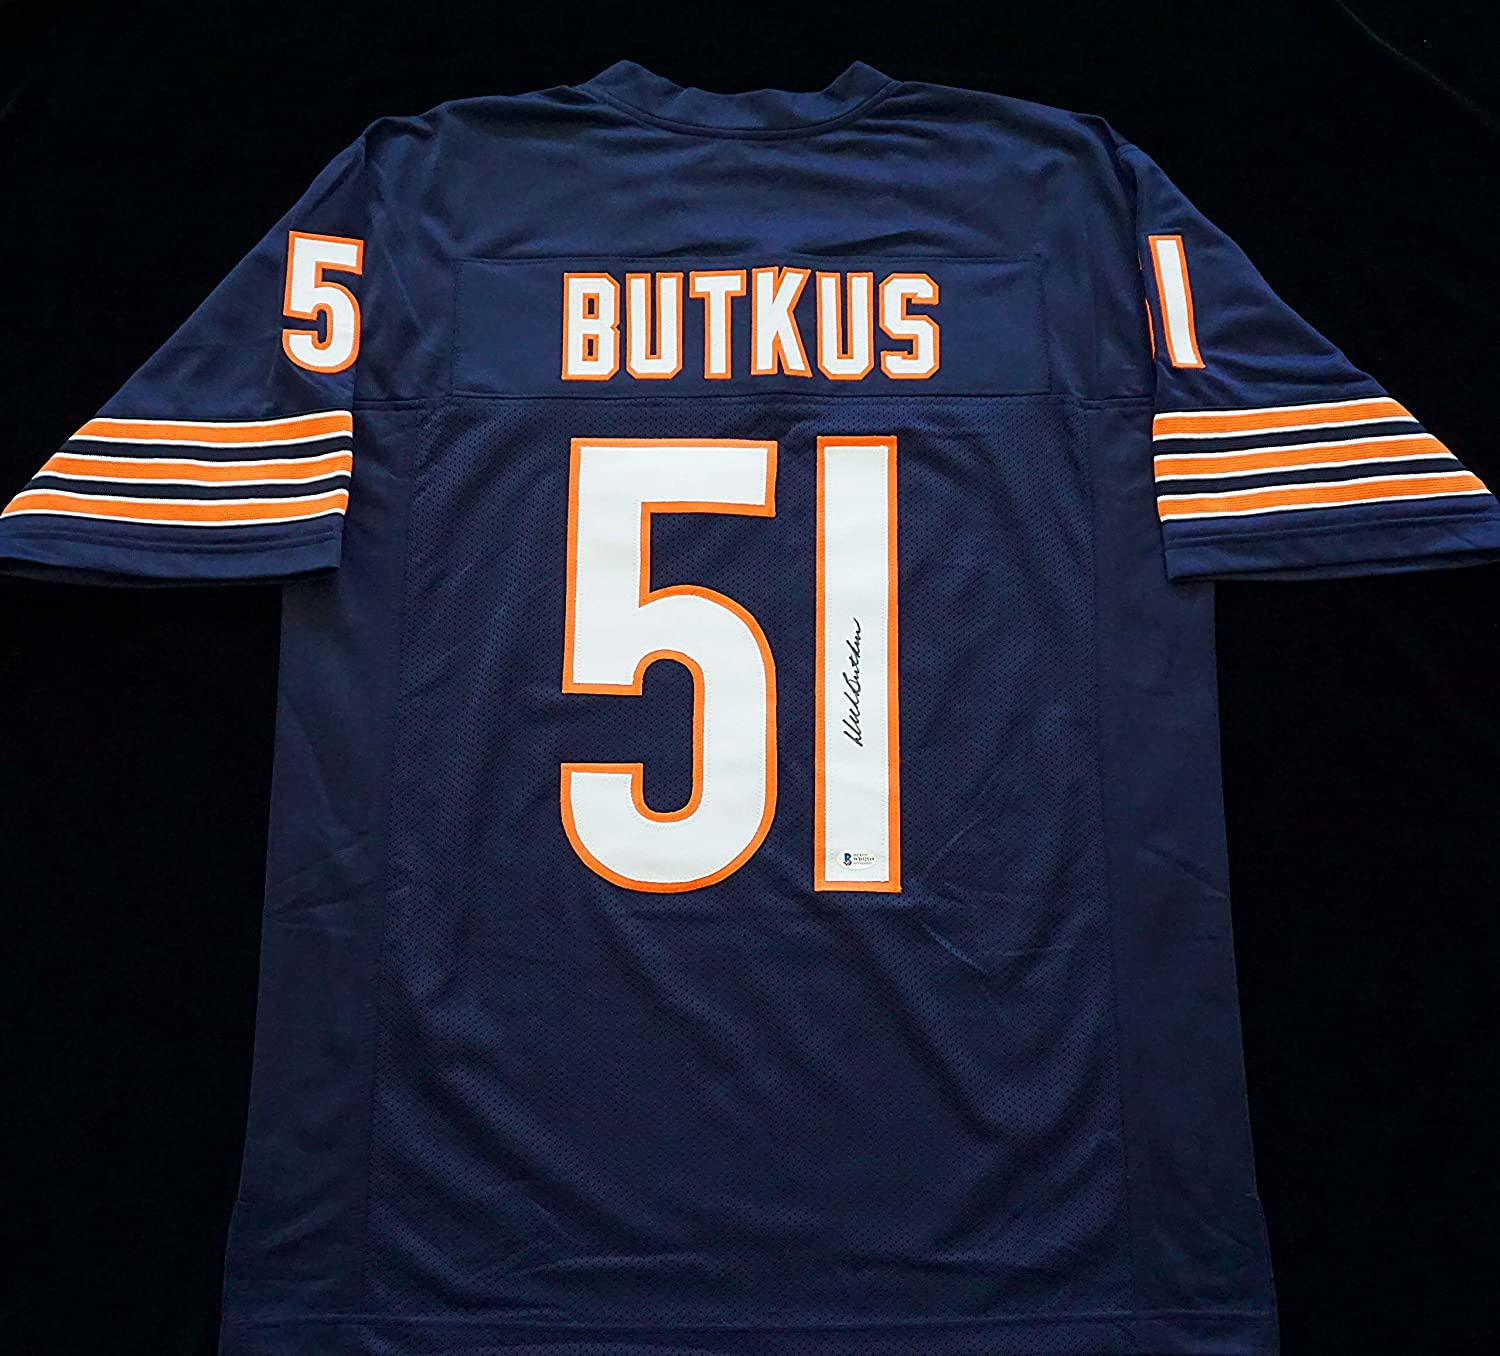 Dick Butkus Signed Autographed Blue Football Jersey with Beckett ...